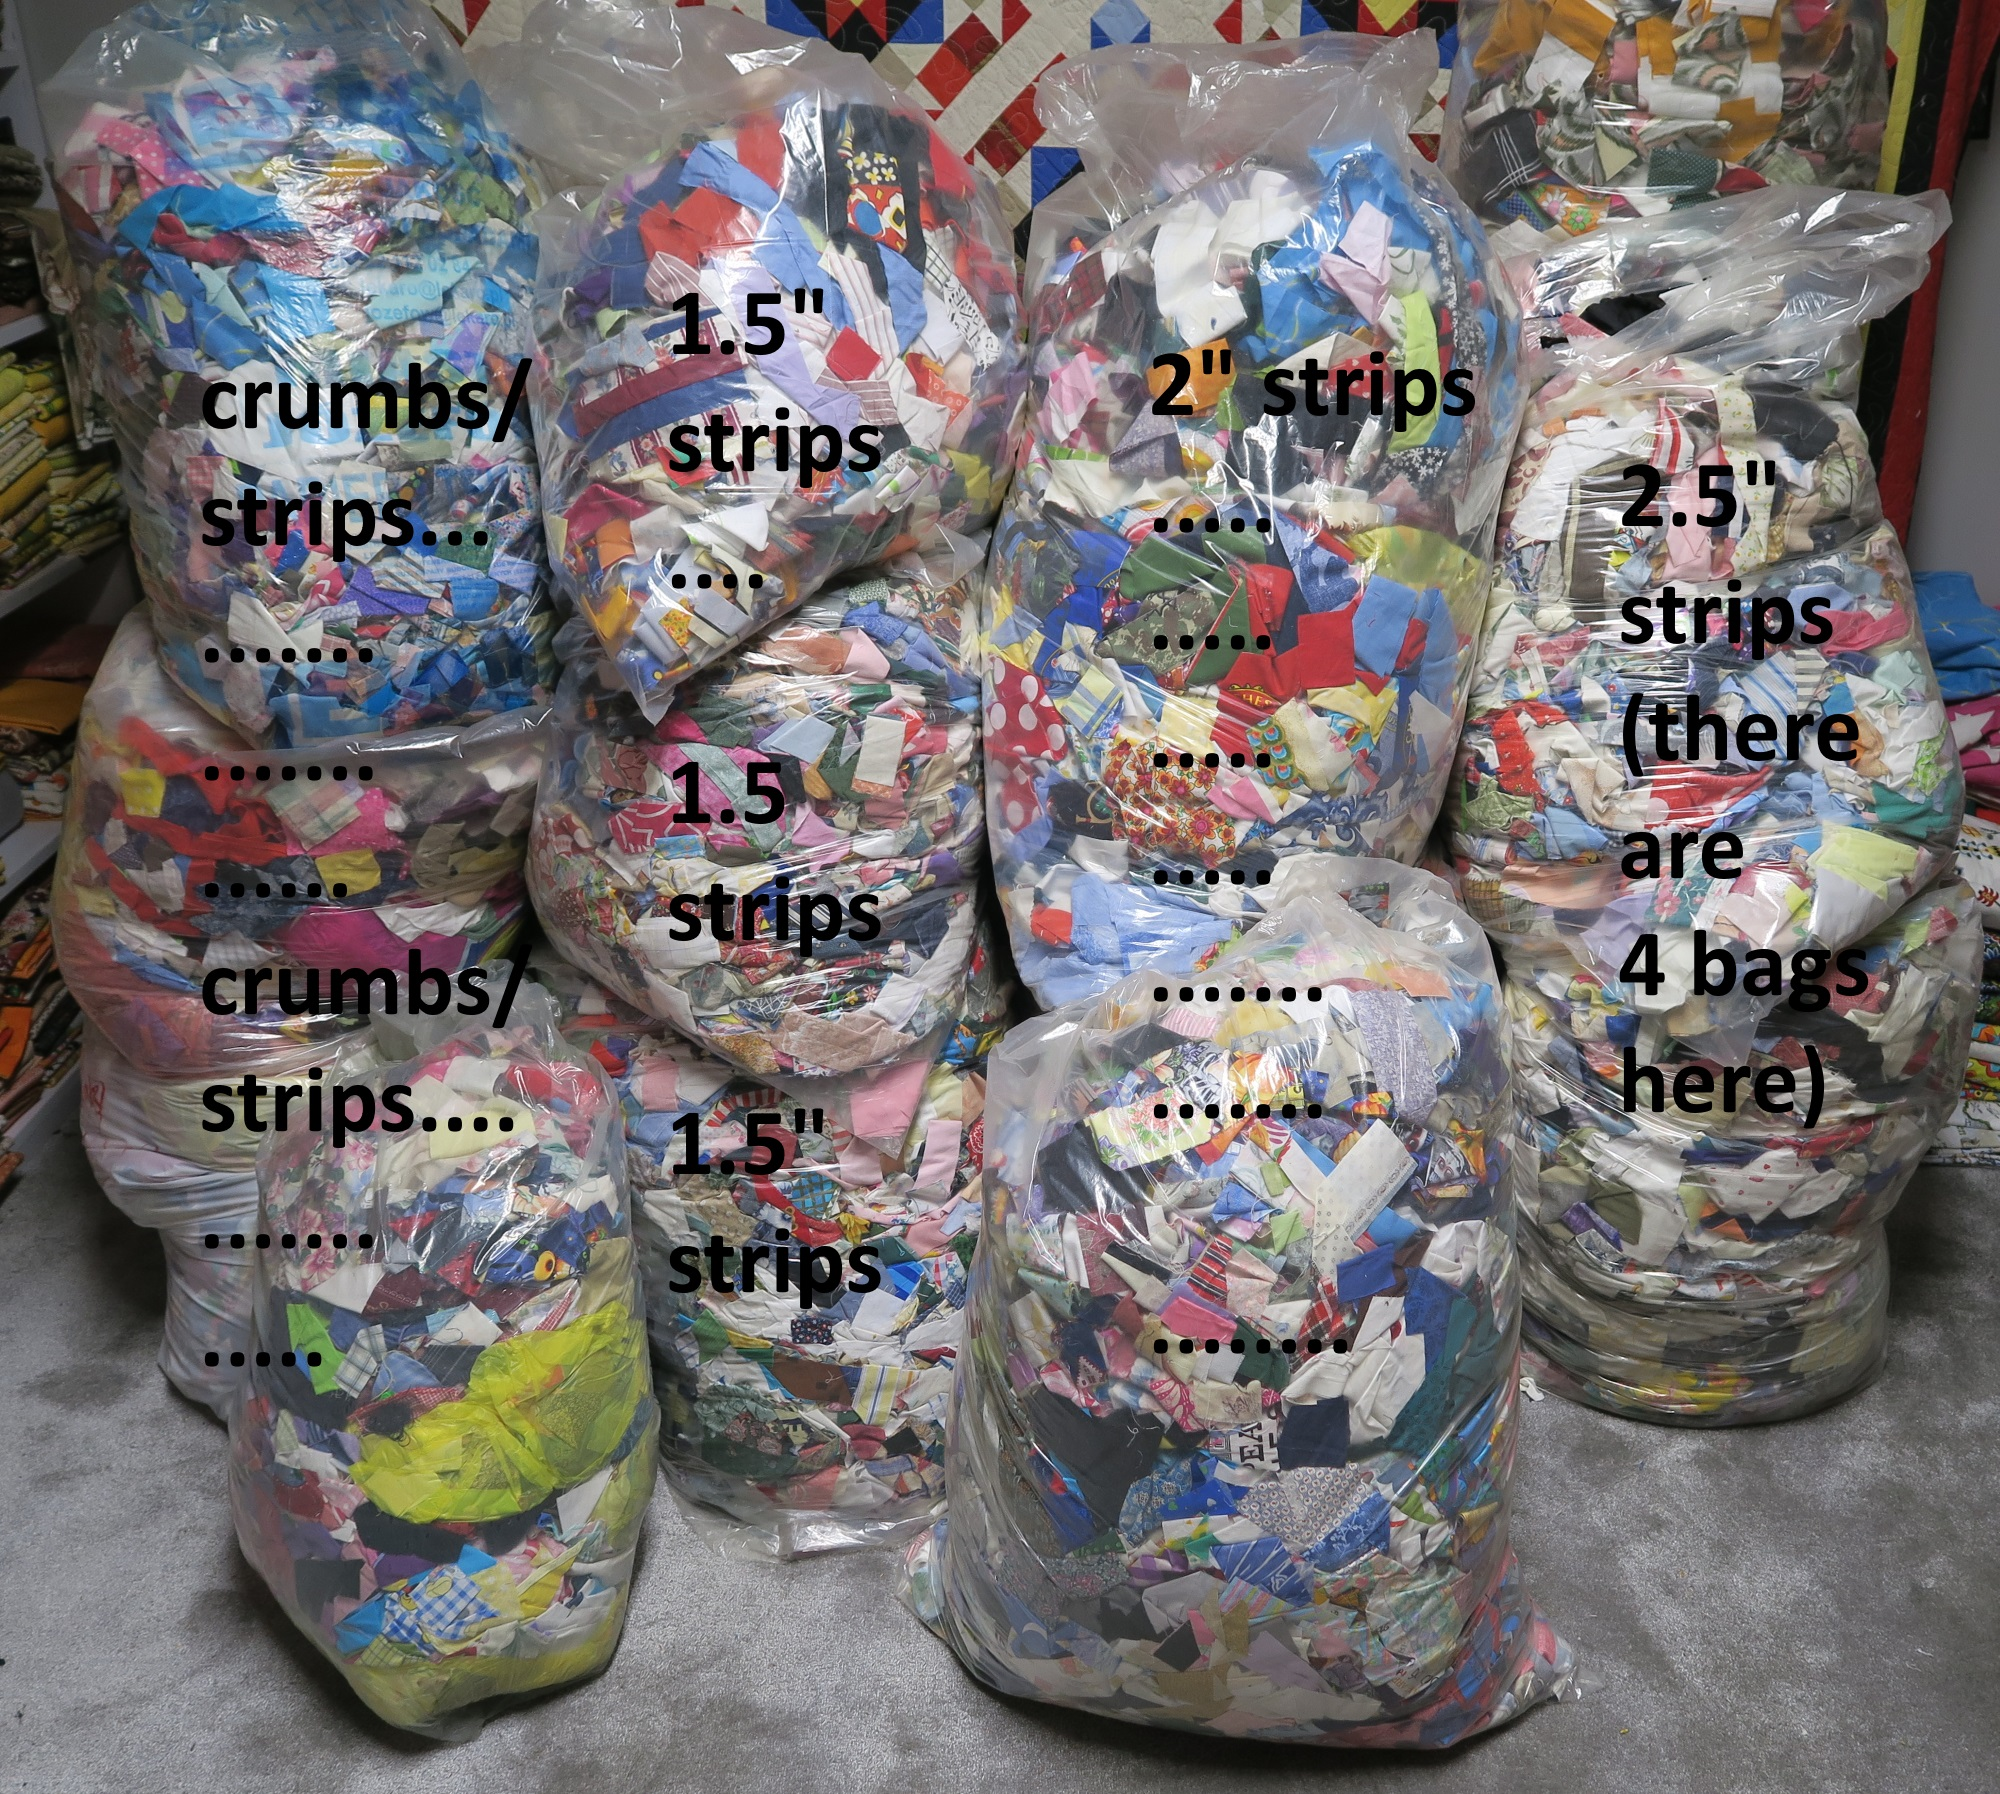 No matter whether you consider this many strips/scraps (sorted) a blessing or a curse, one thing is for sure - they represent a LOT of possibilities.